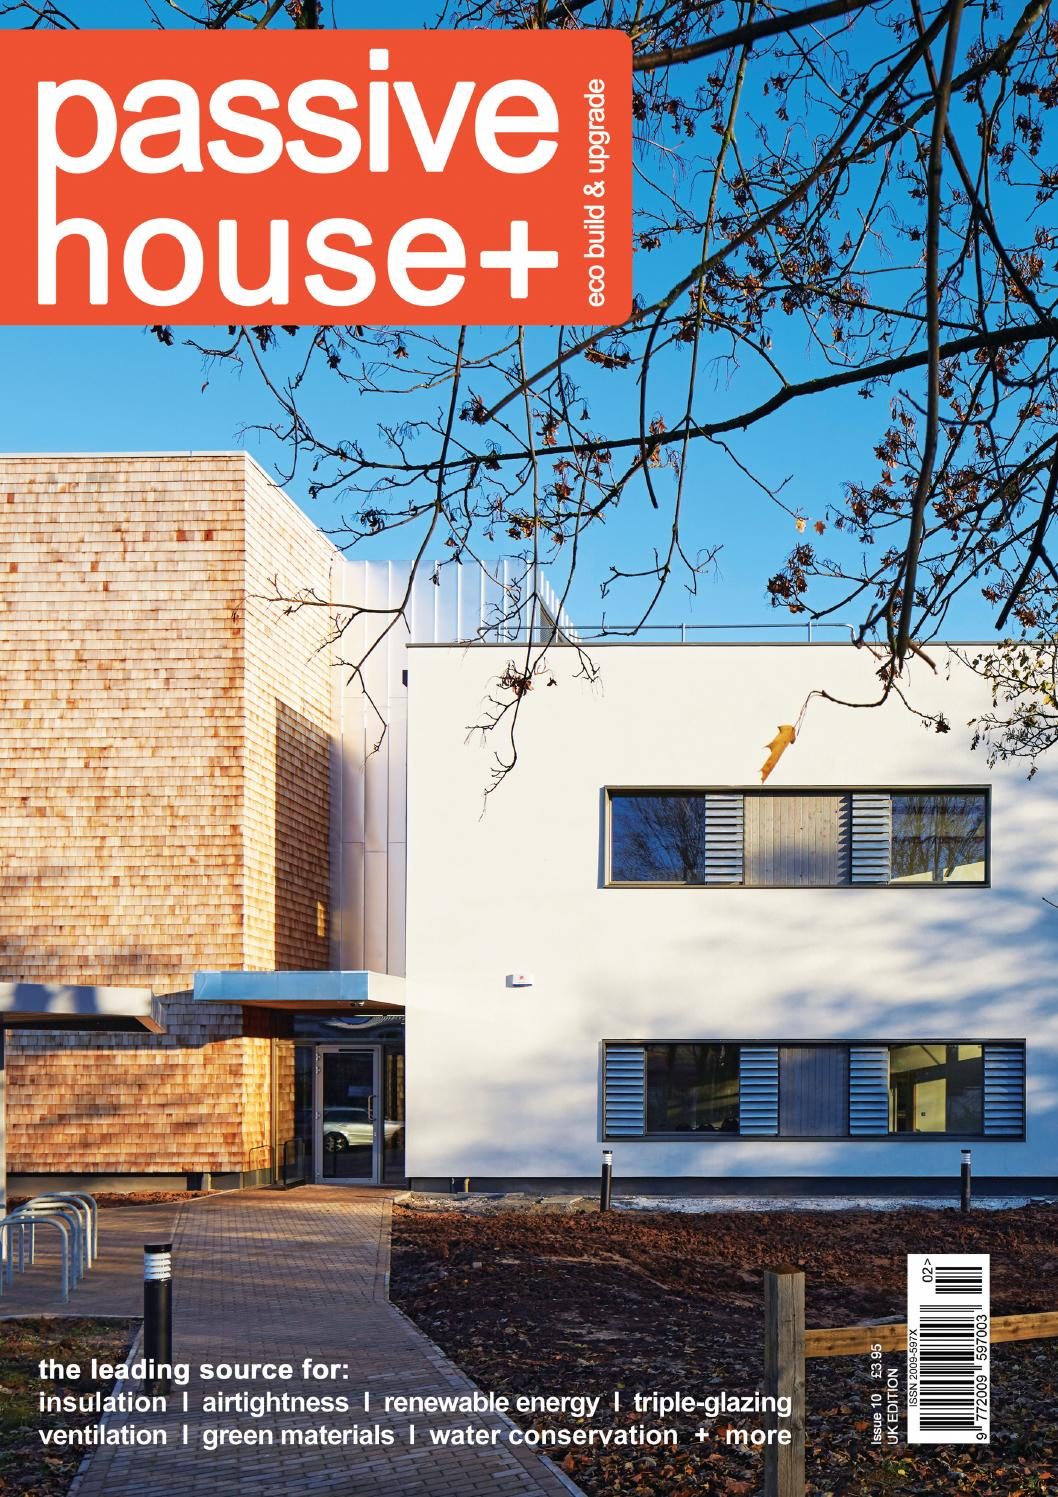 Passive house plus issue 10 (UK edition) by Passive House Plus - issuu